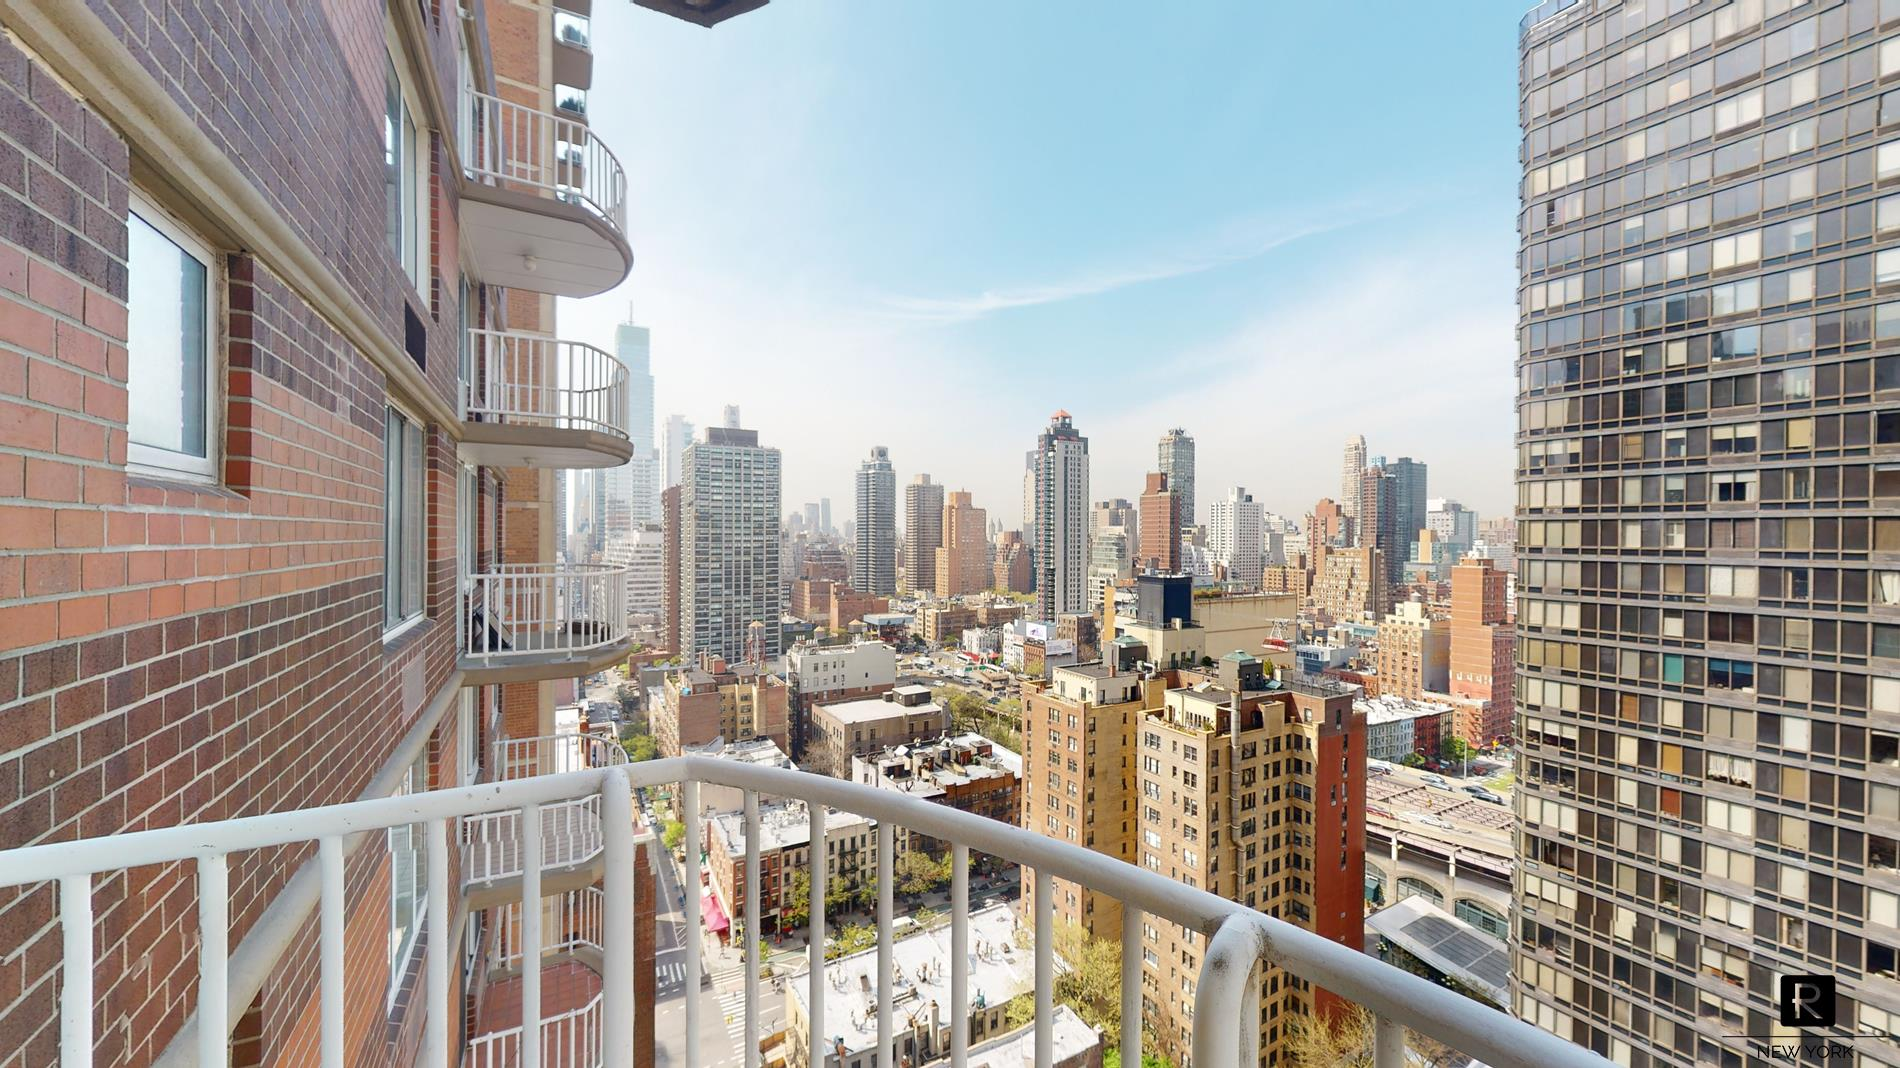 420 East 58th Street Sutton Place New York NY 10022